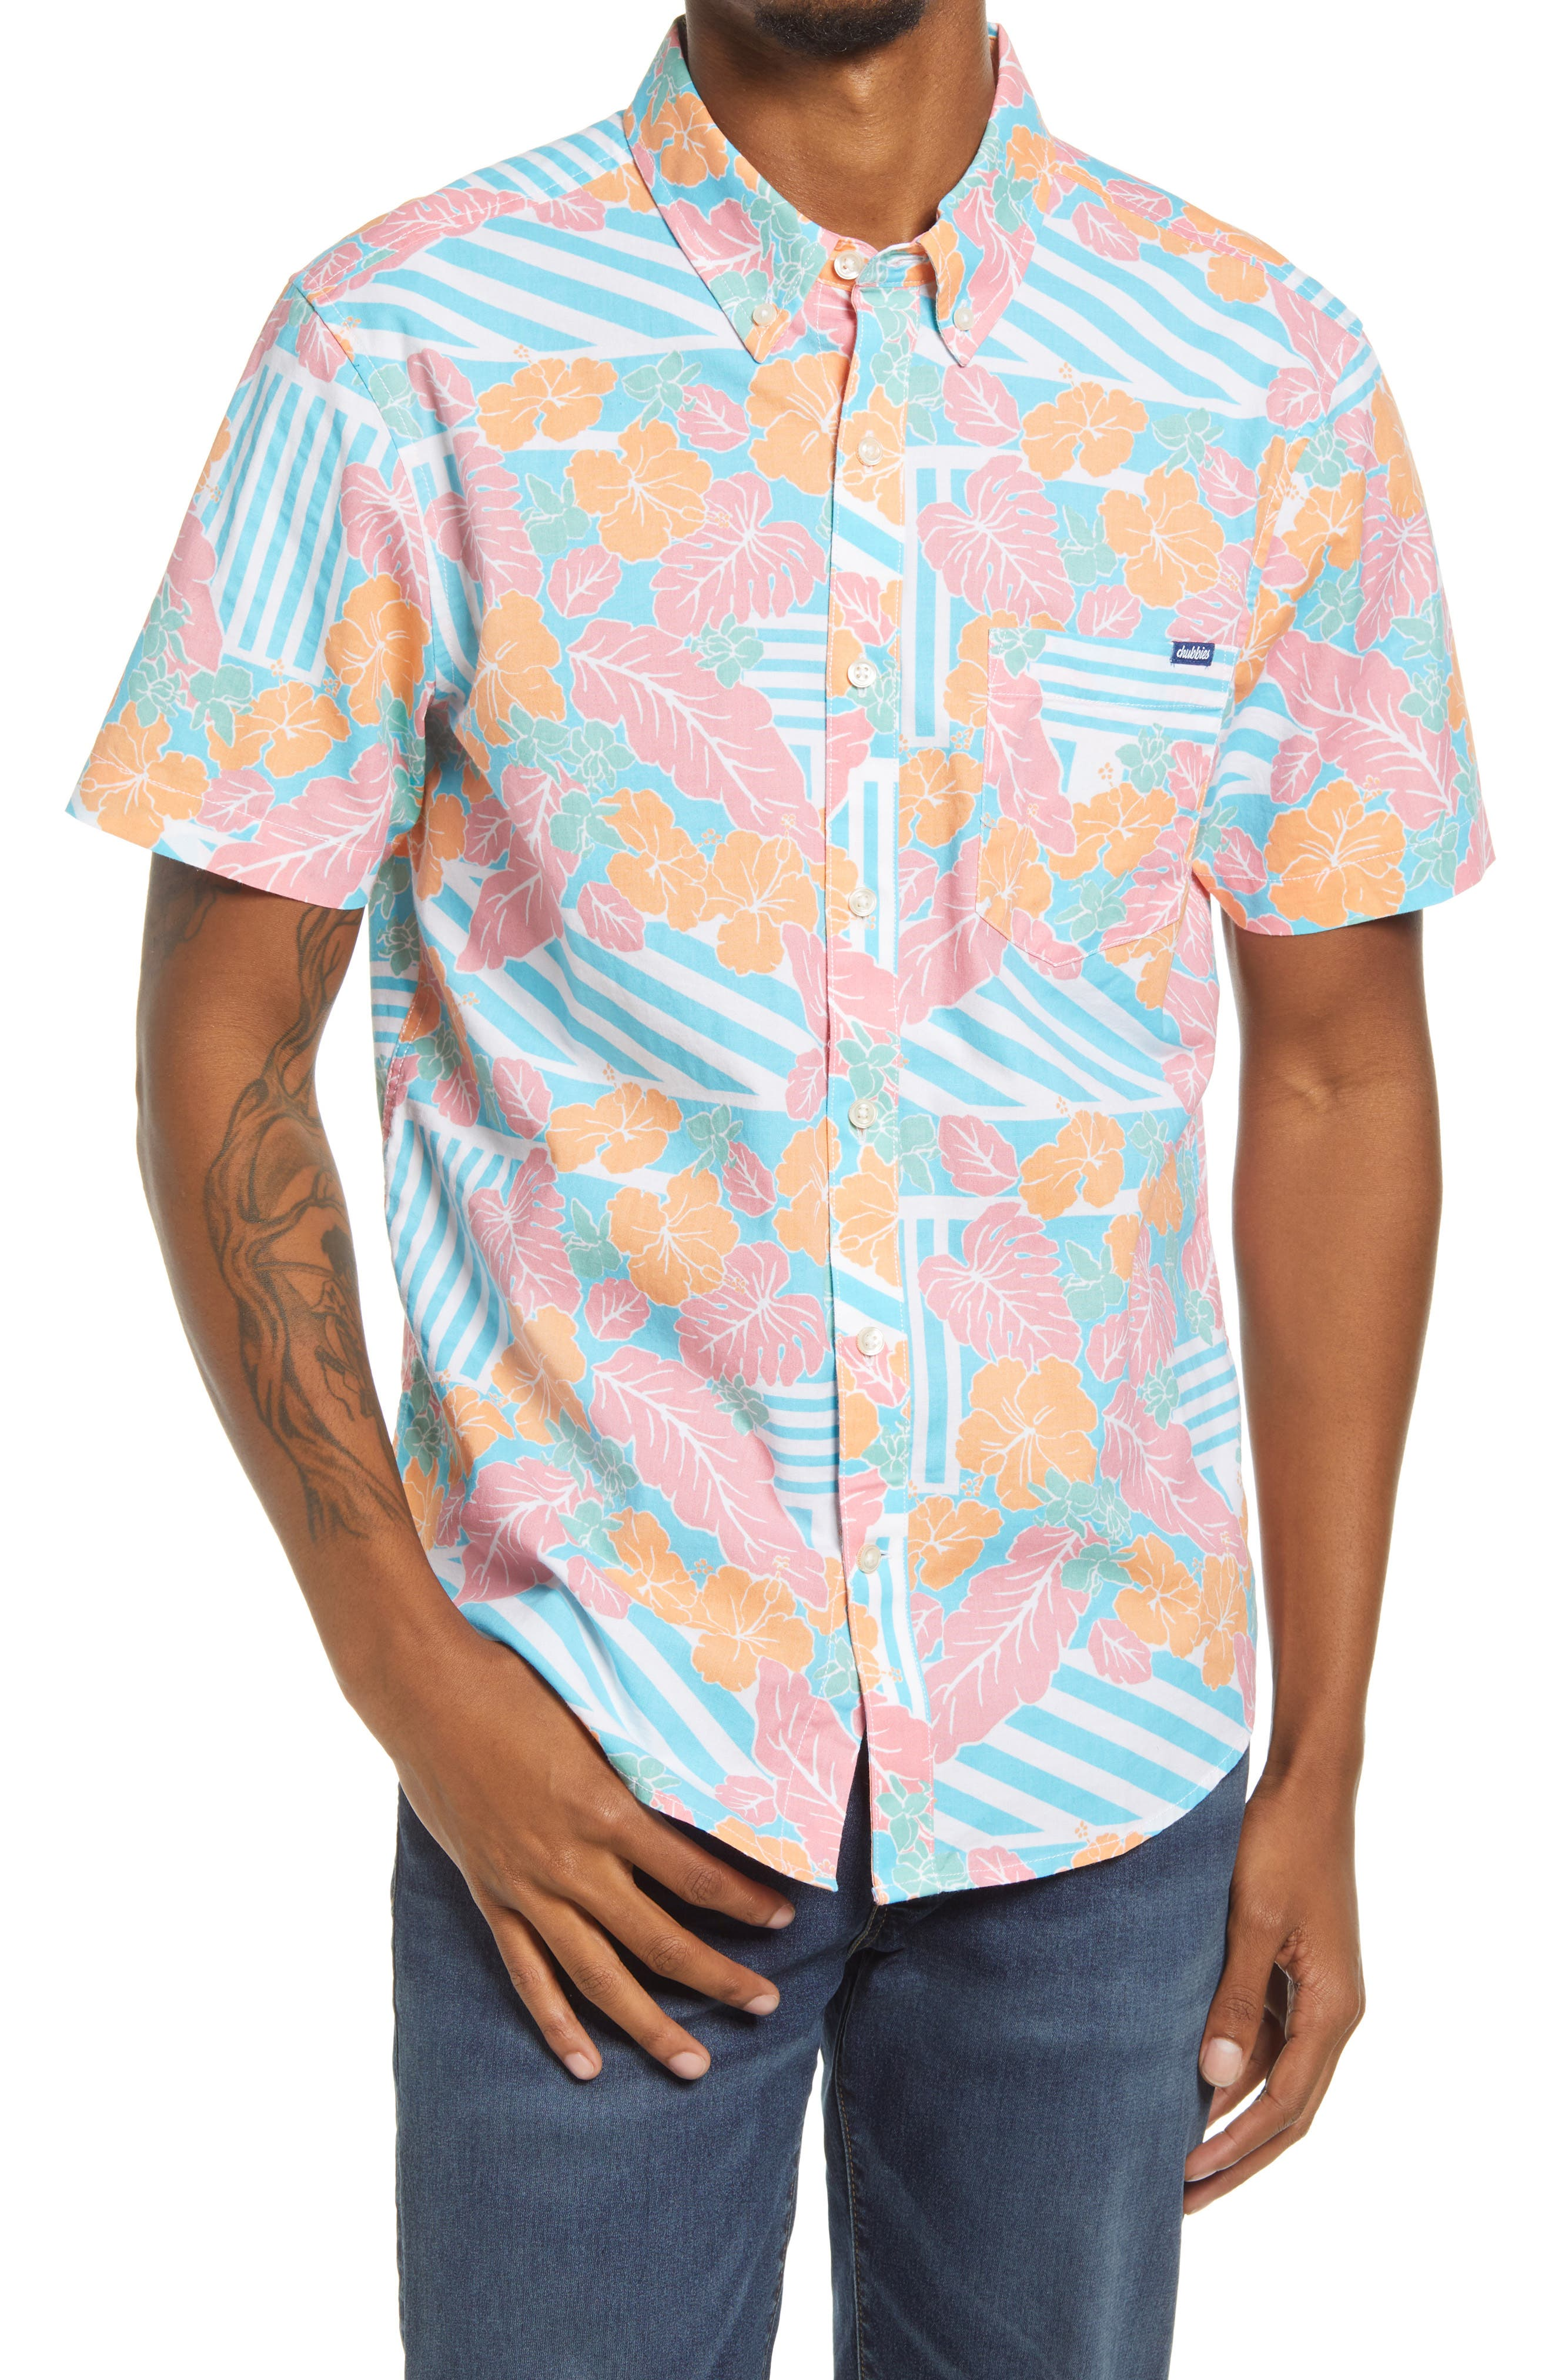 The Inspiration Floral Short Sleeve Stretch Button-Down Shirt